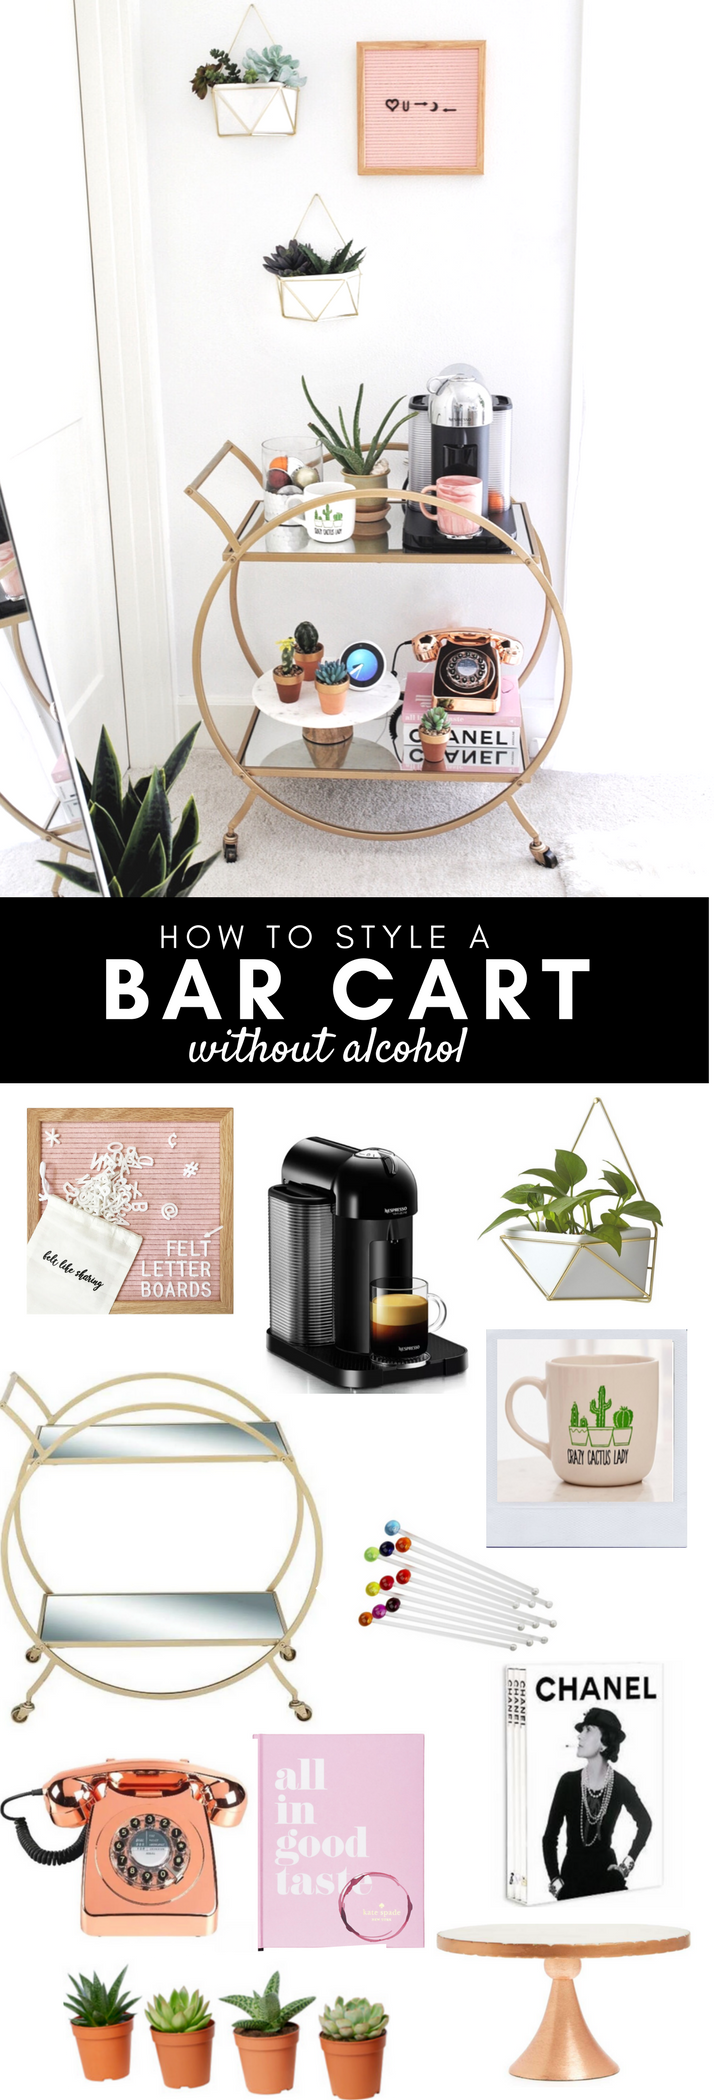 How To Style A Bar Cart Without Alcohol Gypsy Tan